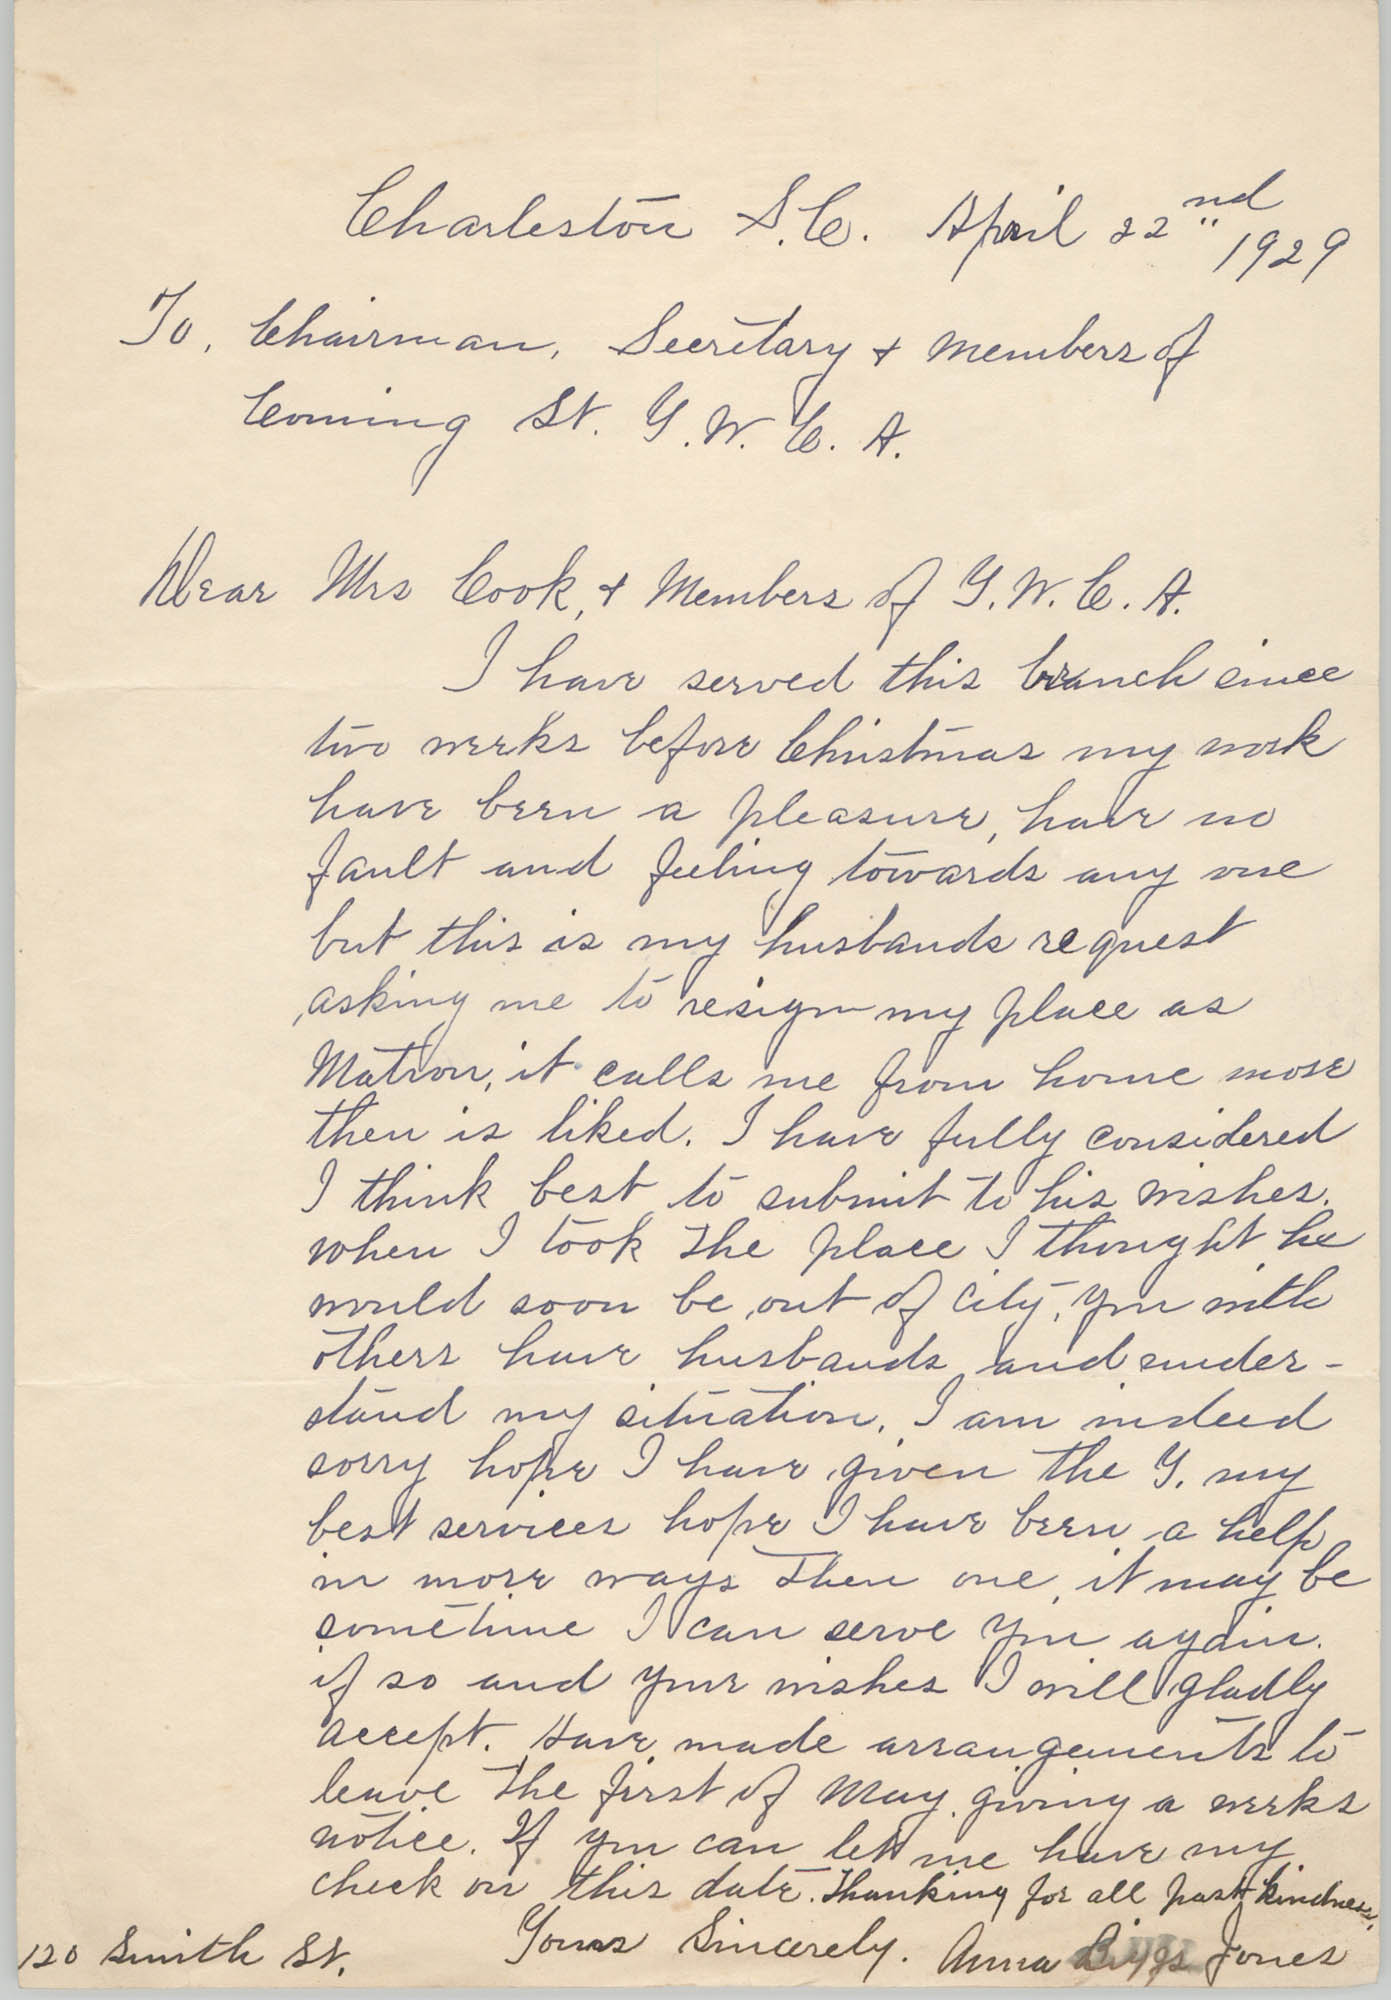 Letter from Anna Biggs Jones to Coming Street Y.W.C.A., April 22, 1929